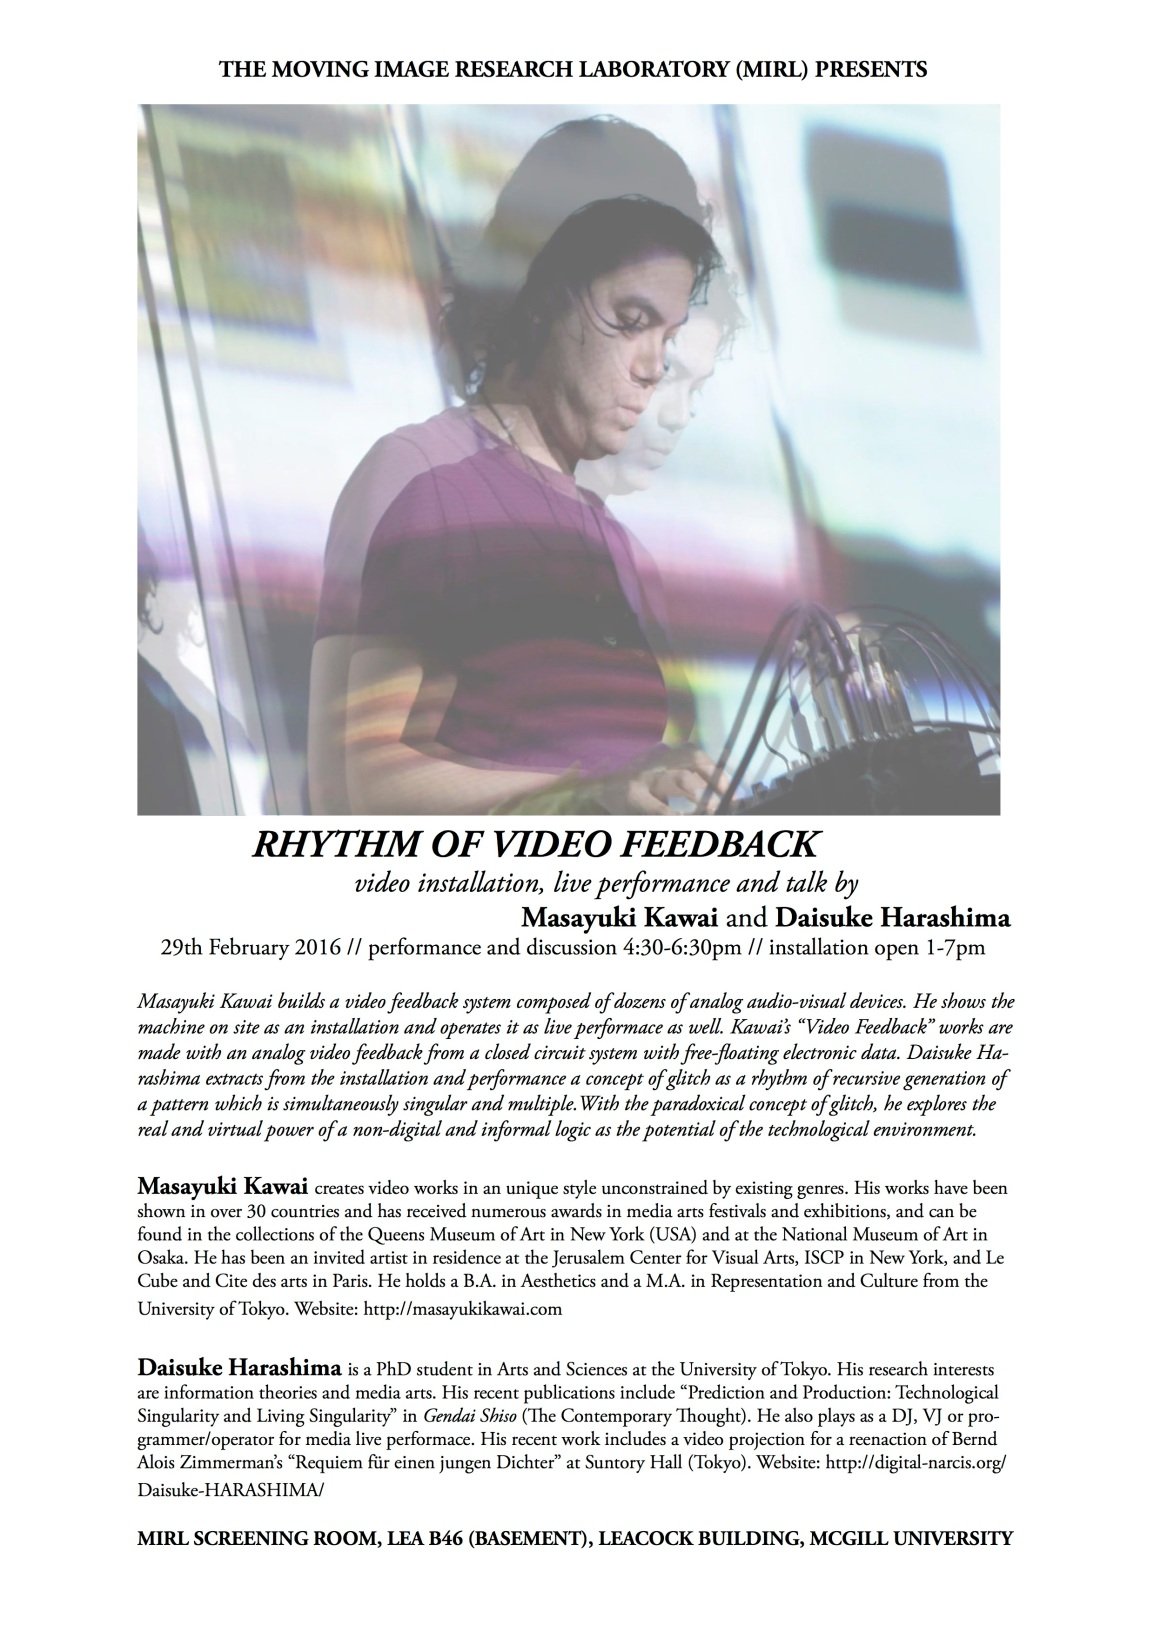 Rhythm-of-Video-Feedback-1.jpg